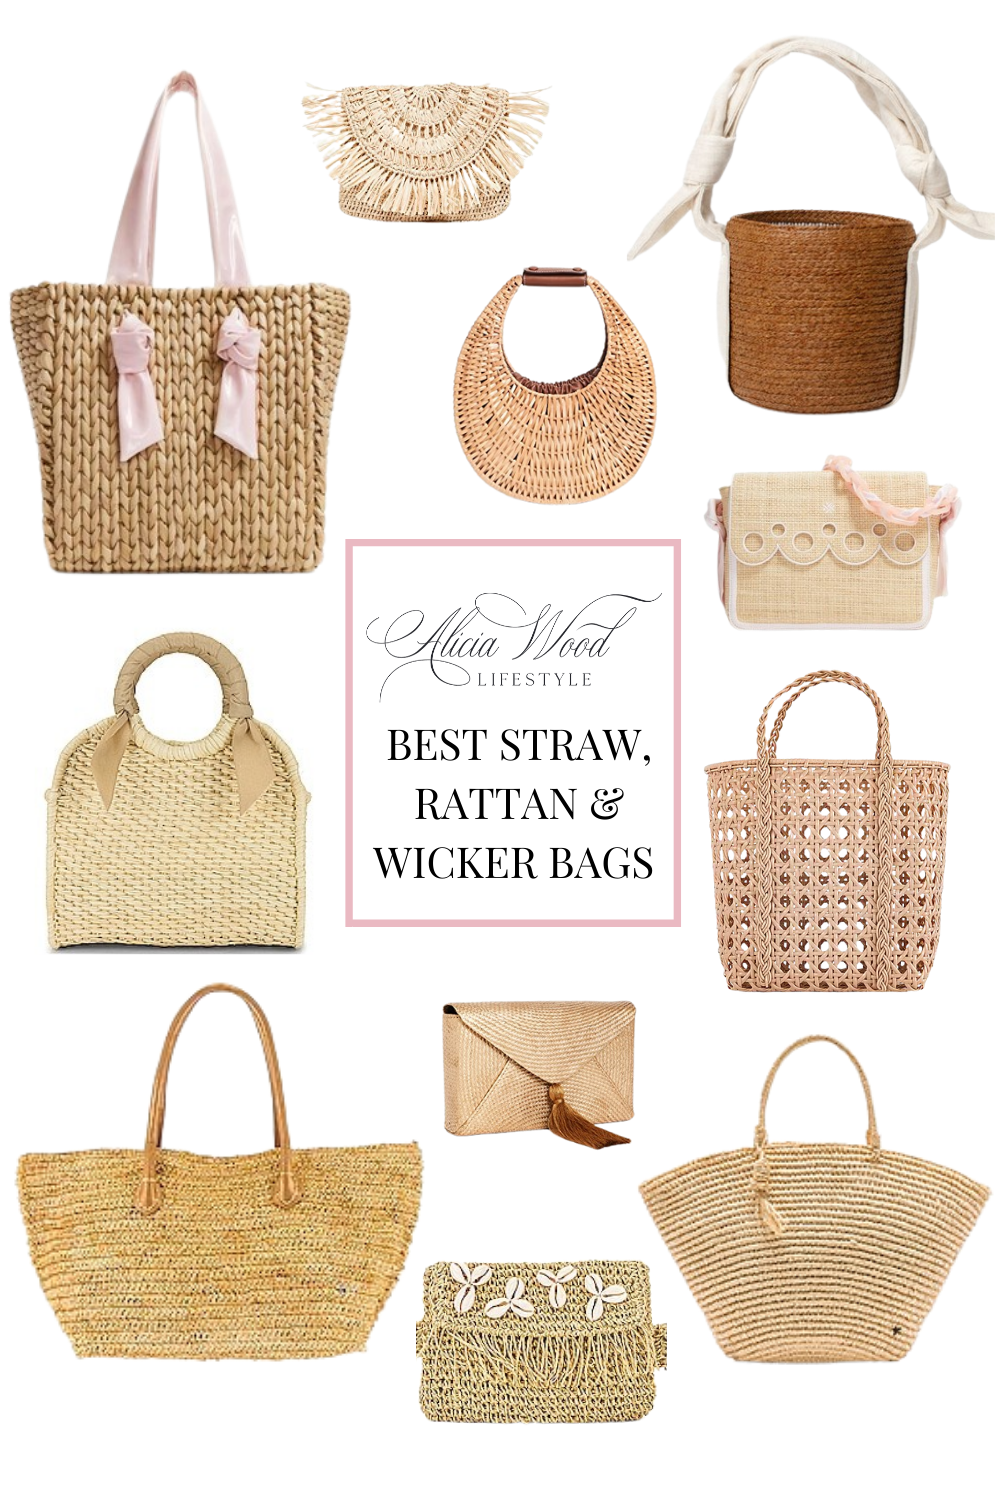 Best Straw Bags and Totes to Add To Your Collection